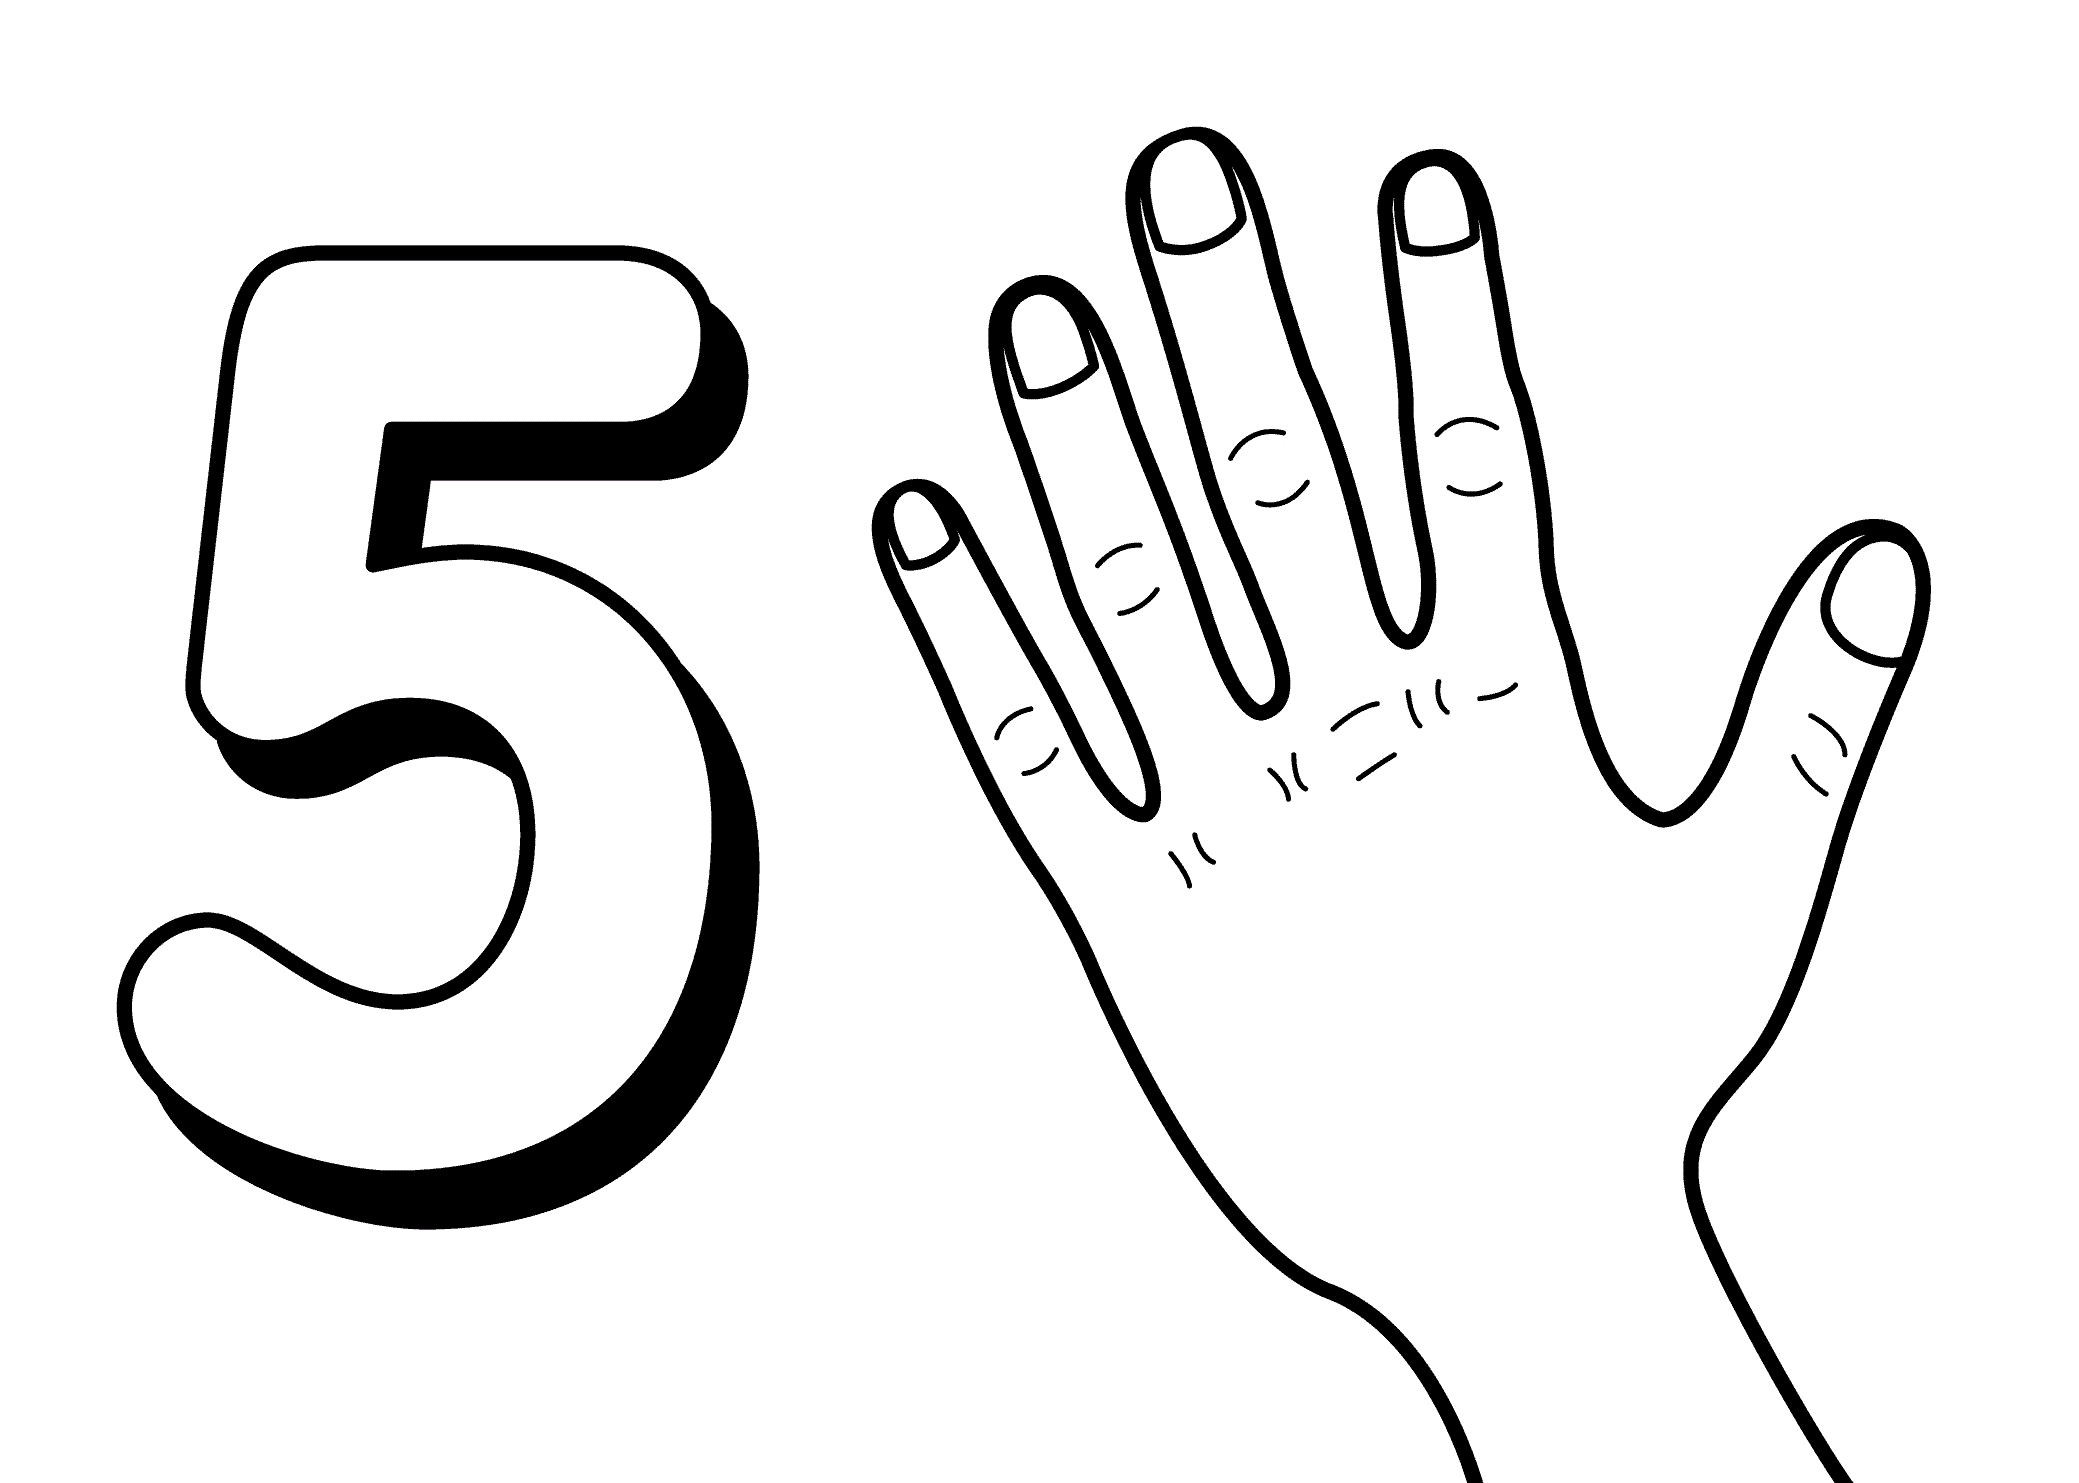 Number Coloring Pages - Number Coloring Pages Coloringsuite